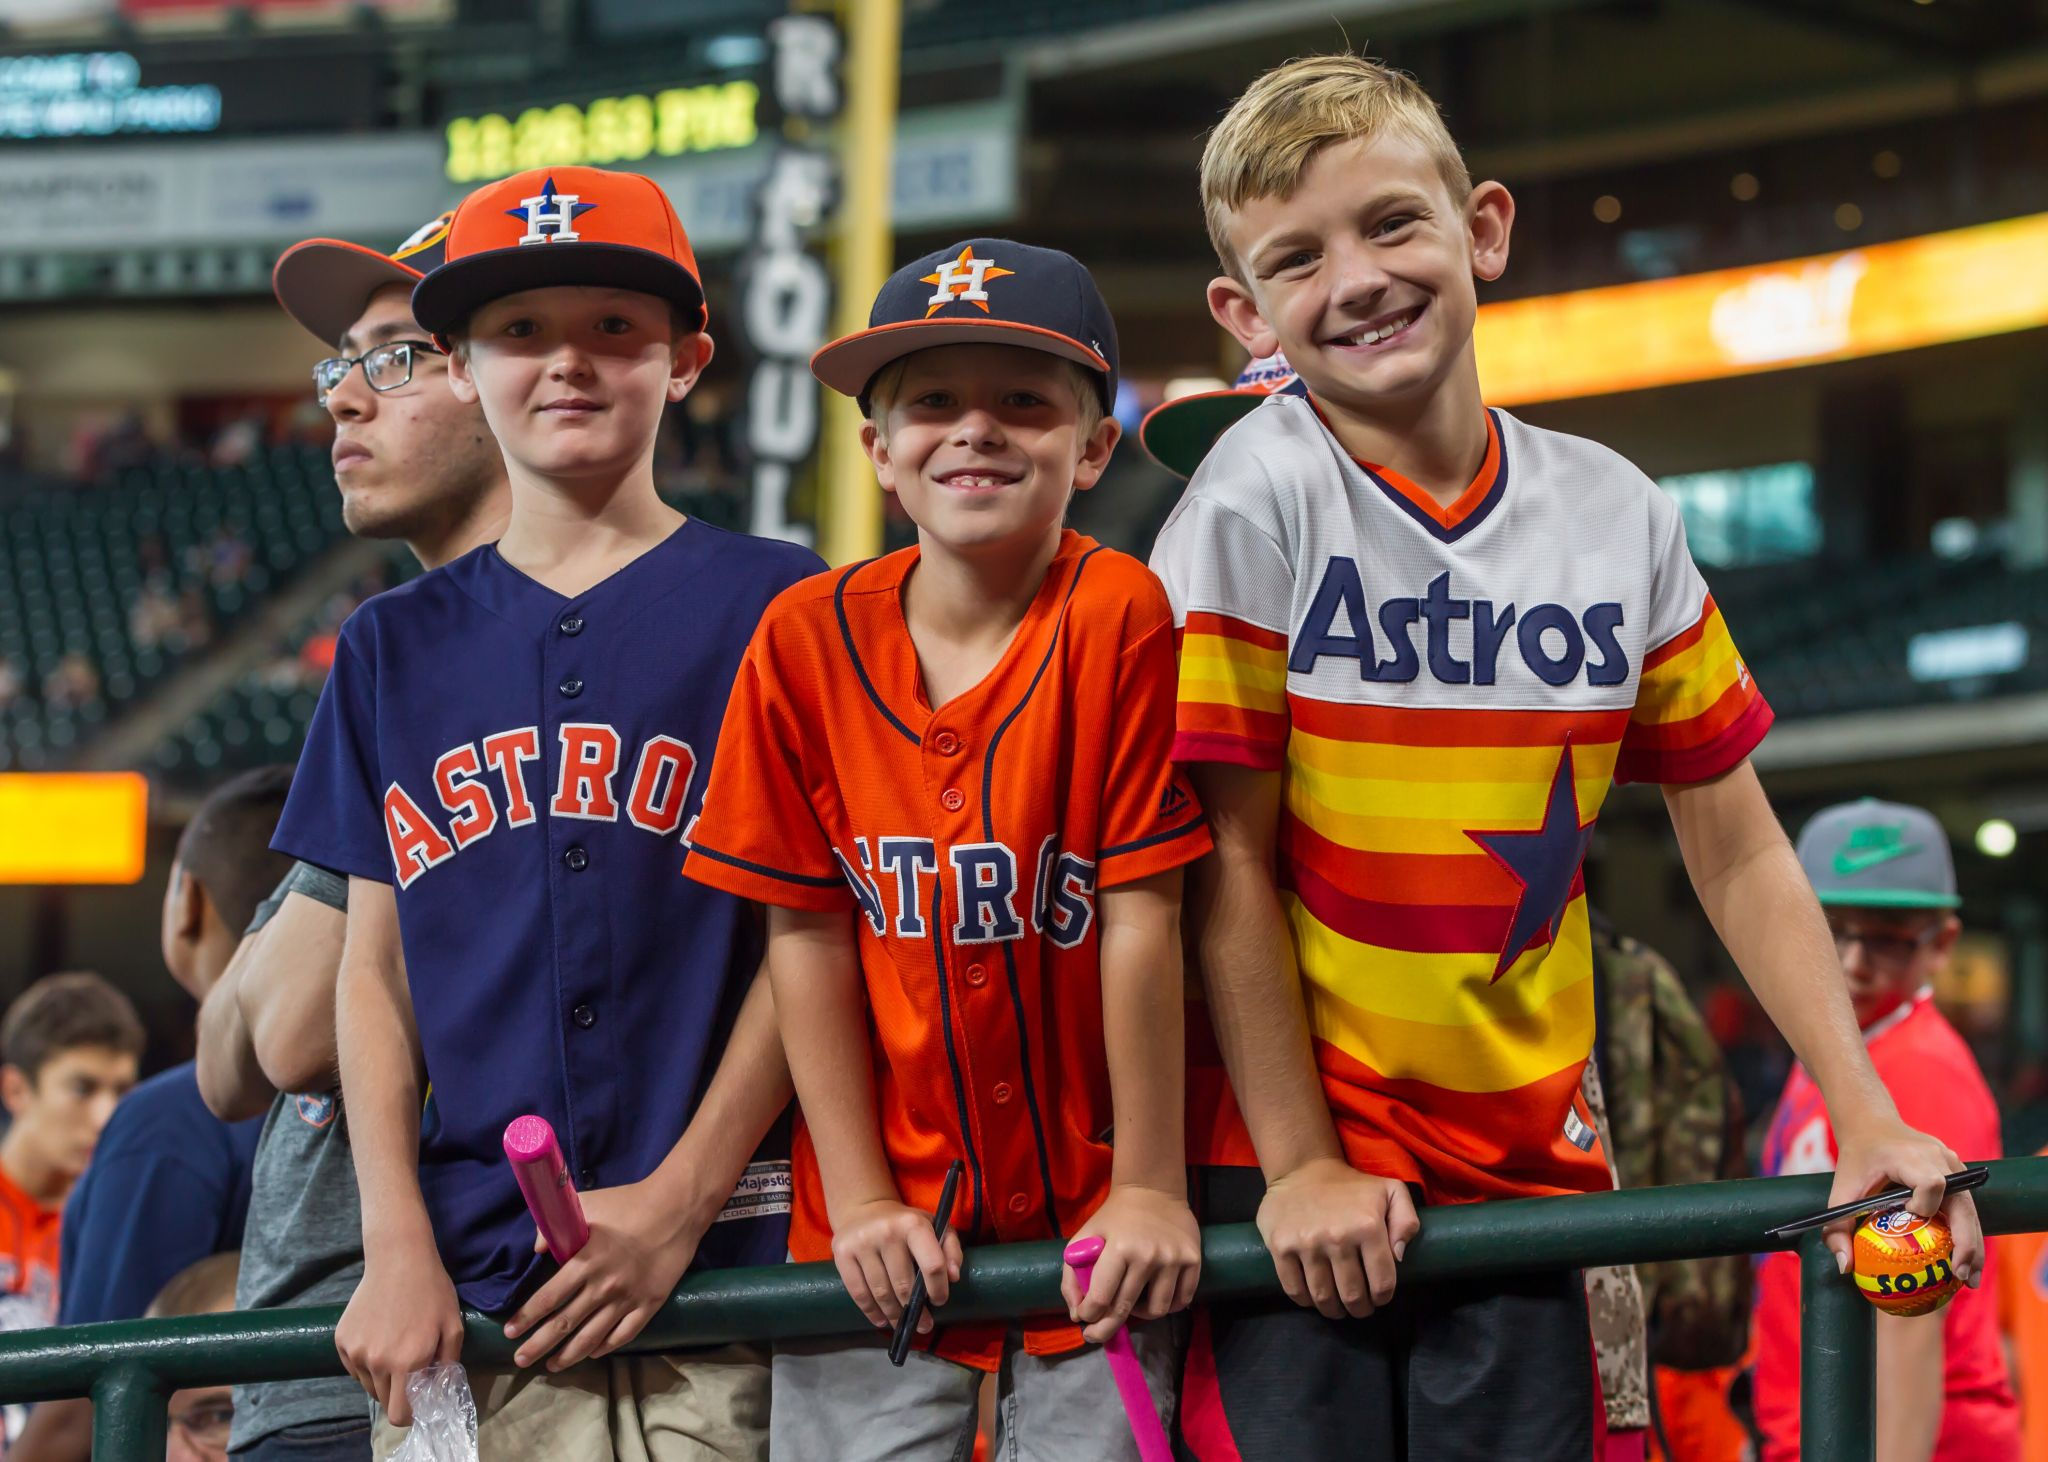 Save up to 50% off all Houston Astros gear at Fanatics.